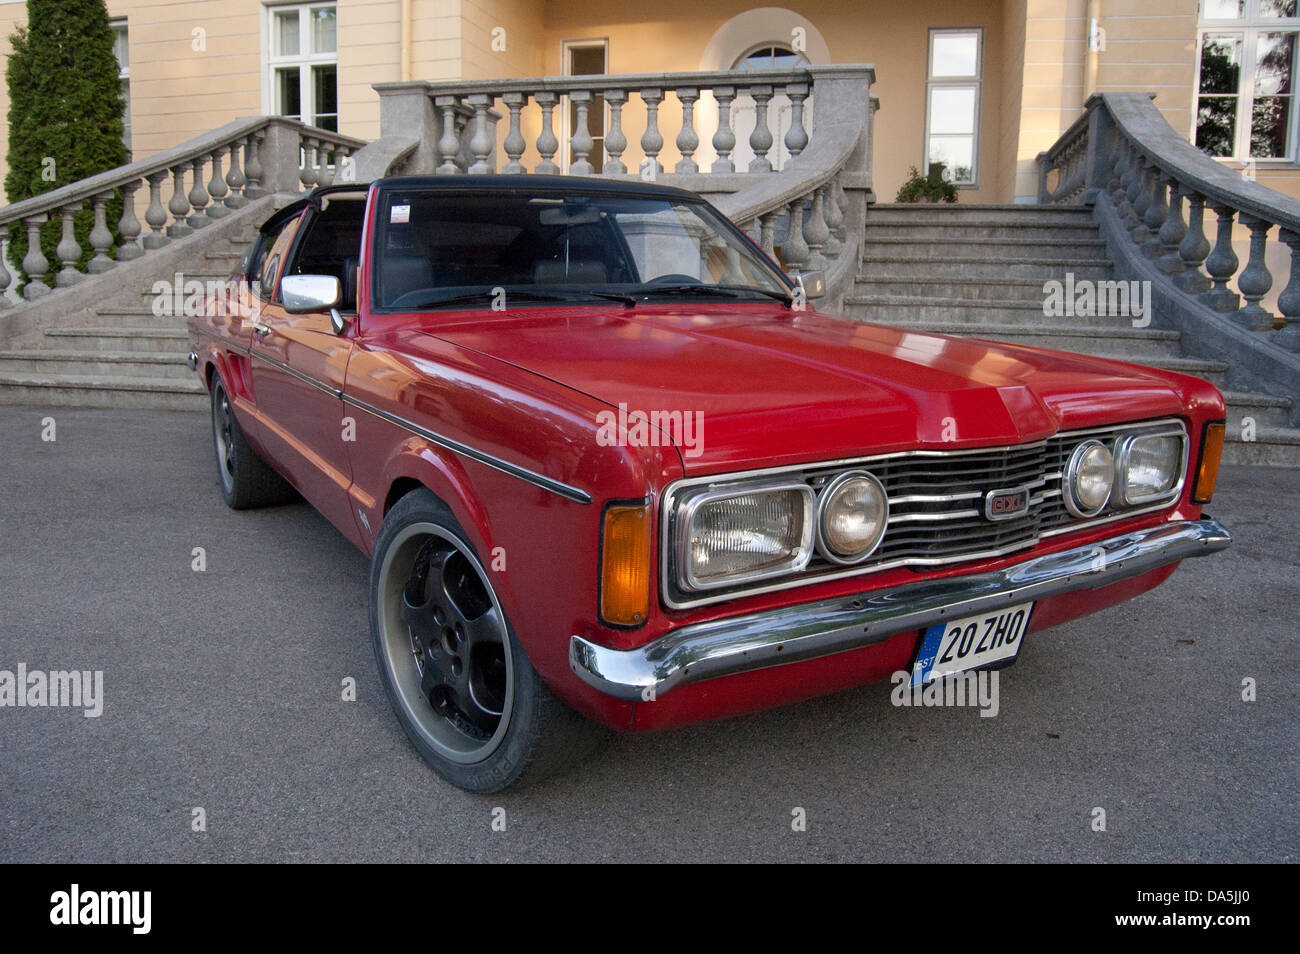 rare ford taunus gxl coupe in front of an old mansion in estonia stock photo royalty free image. Black Bedroom Furniture Sets. Home Design Ideas